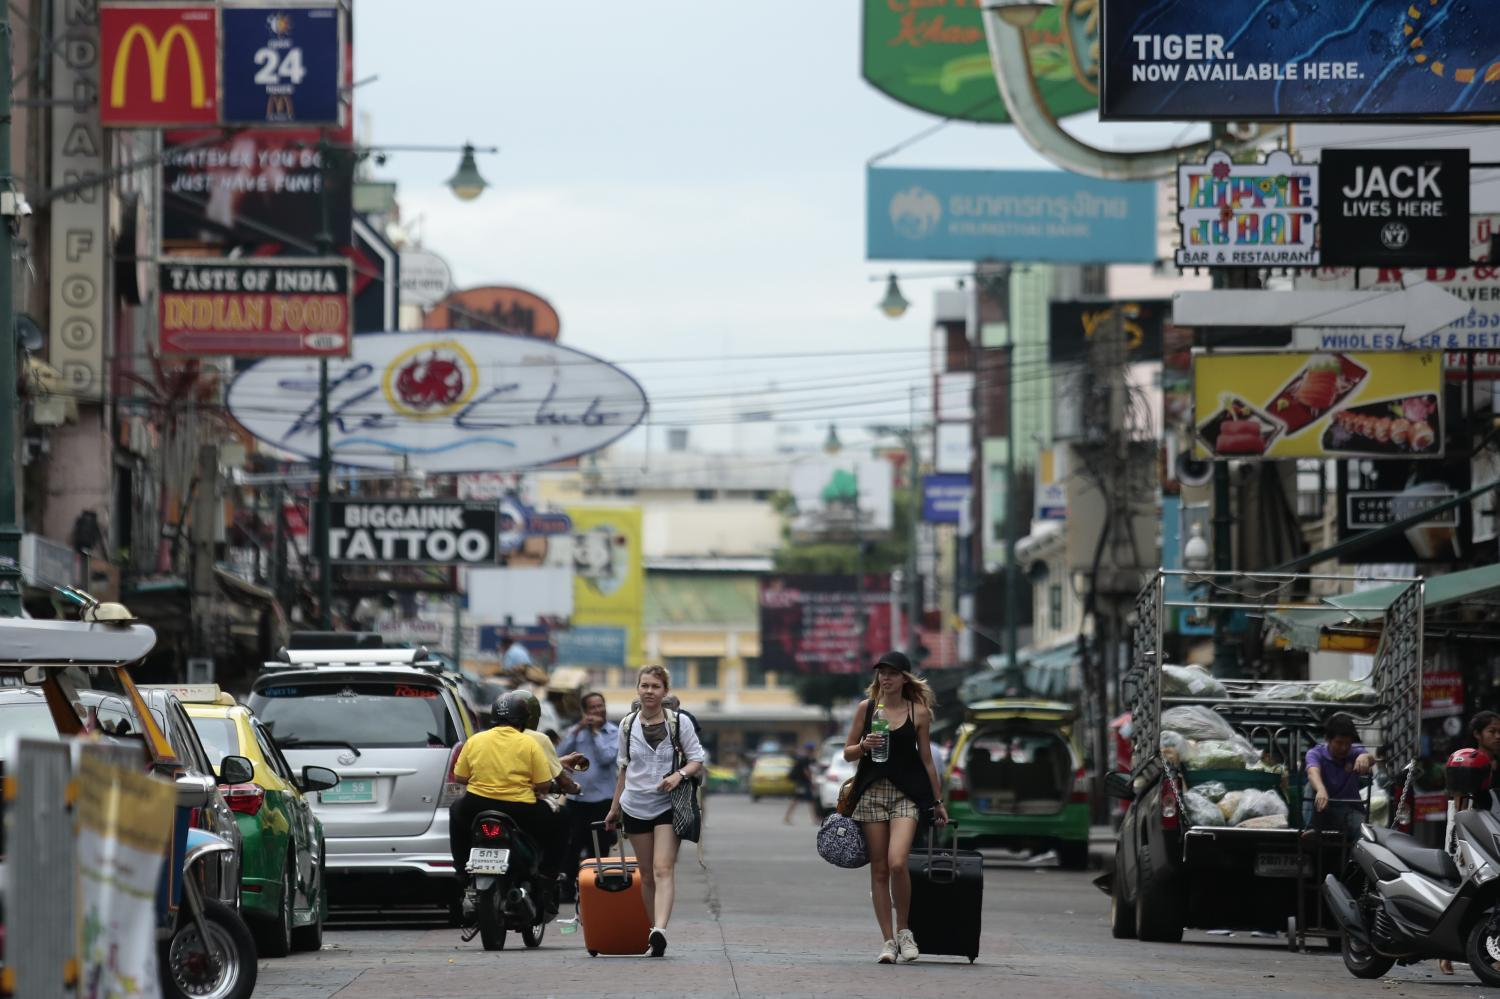 FACELIFT: The Bangkok Metropolitan Administration is planning to revamp the landscape of Khao San Road from October to February. During construction, the road will be opened to business and tourism as usual.